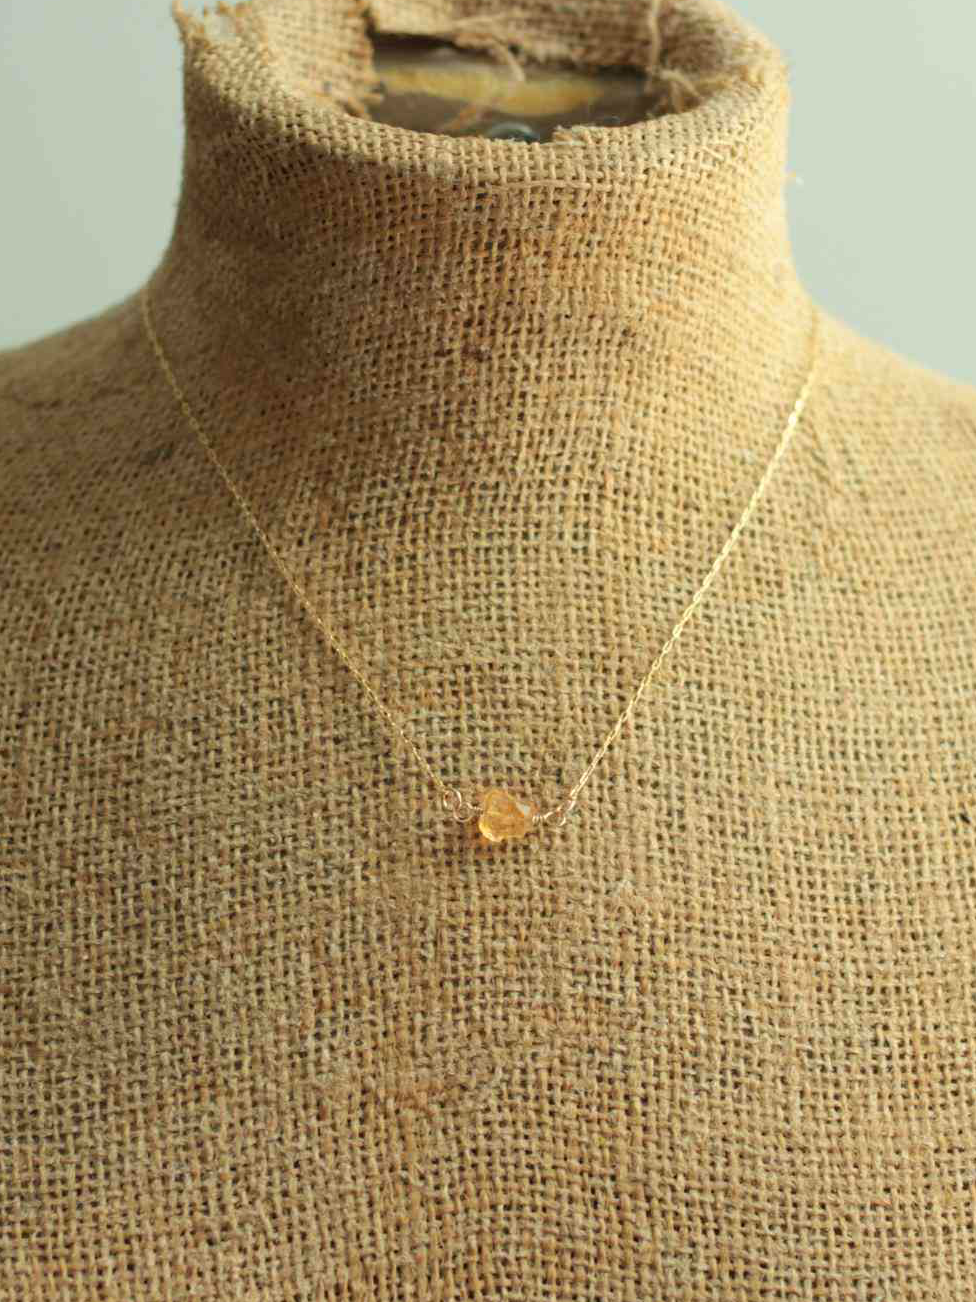 delicate citrine necklace